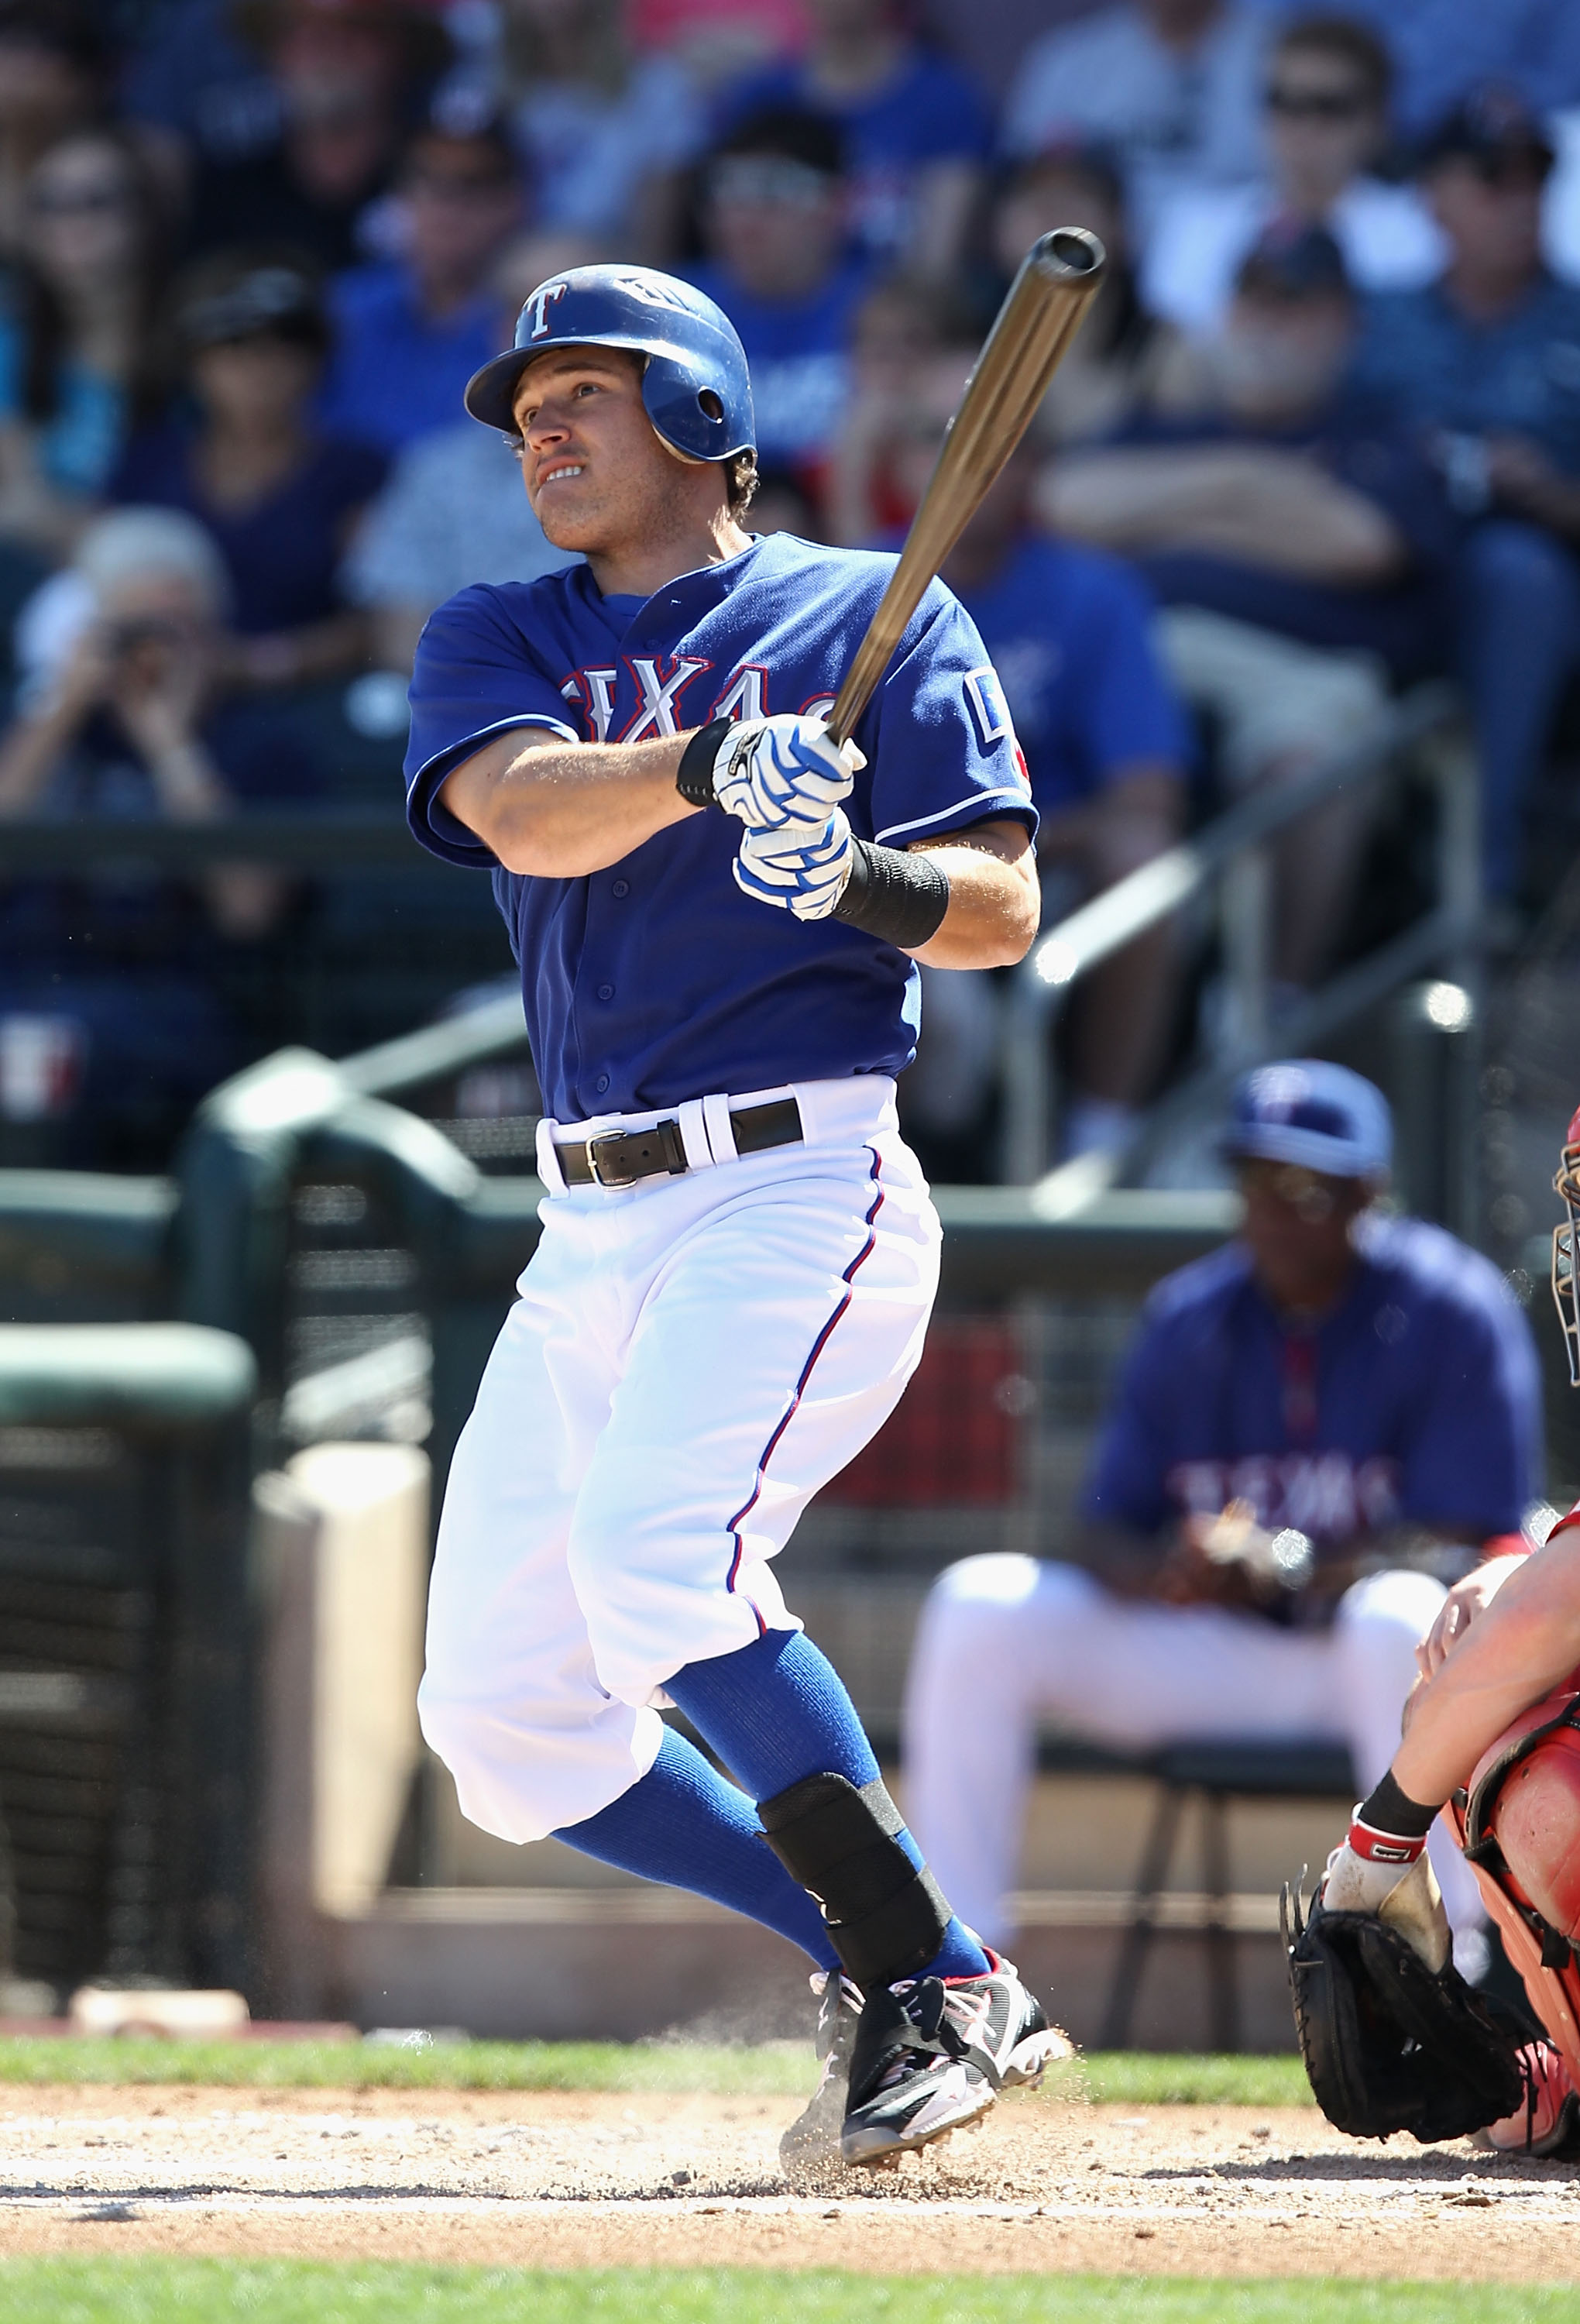 SURPRISE, AZ - MARCH 11:  Ian Kinsler #5 of the Texas Rangers hits a double against the Cincinnati Reds during the first inning of the spring training game at Surprise Stadium on March 11, 2011 in Surprise, Arizona.  (Photo by Christian Petersen/Getty Ima